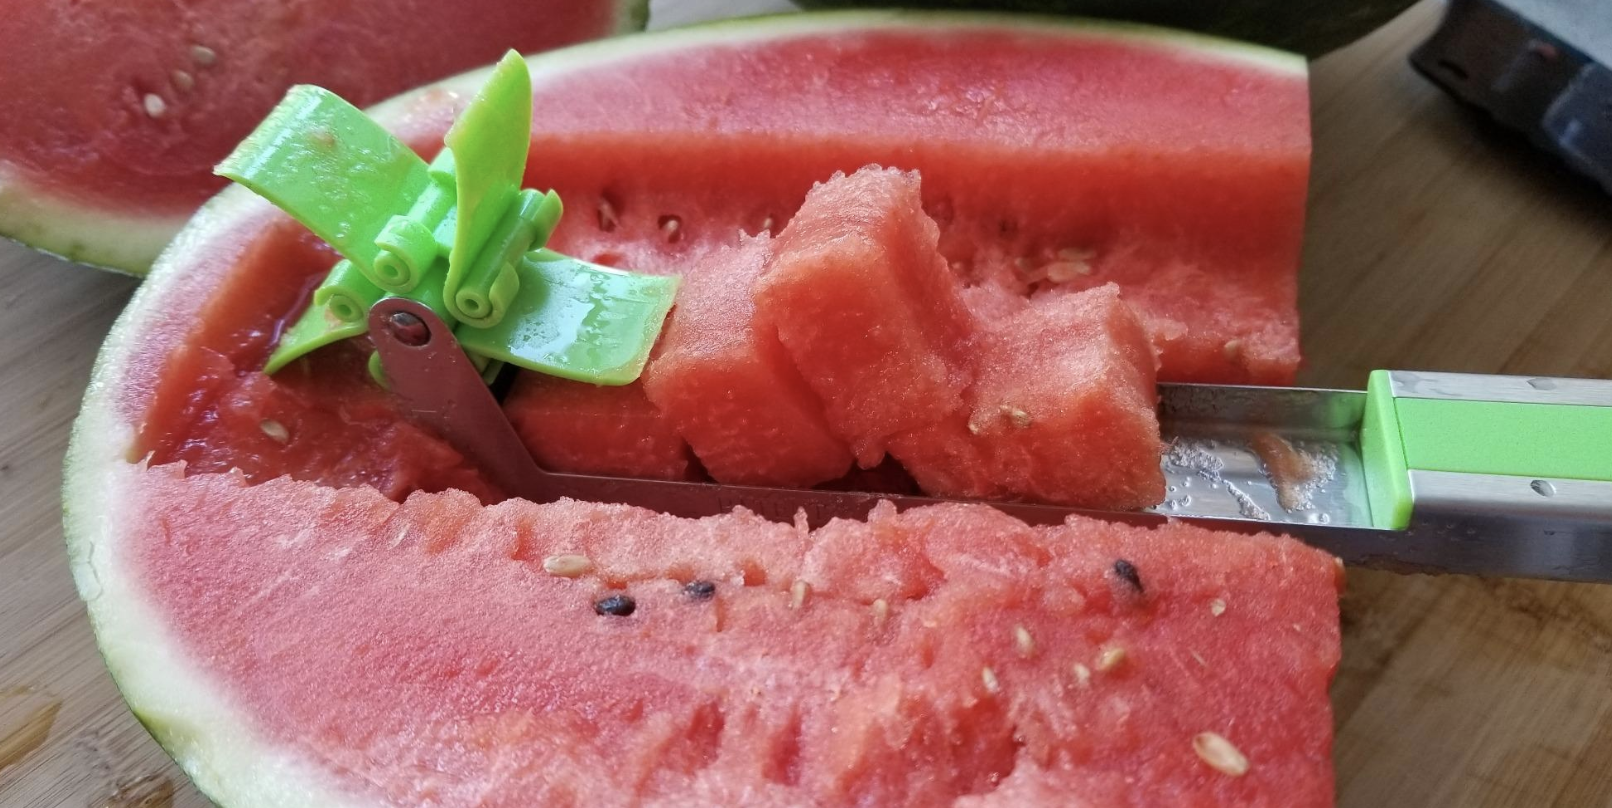 a reviewer pic of stainless steel cutter slicing through watermelon and creating cubes